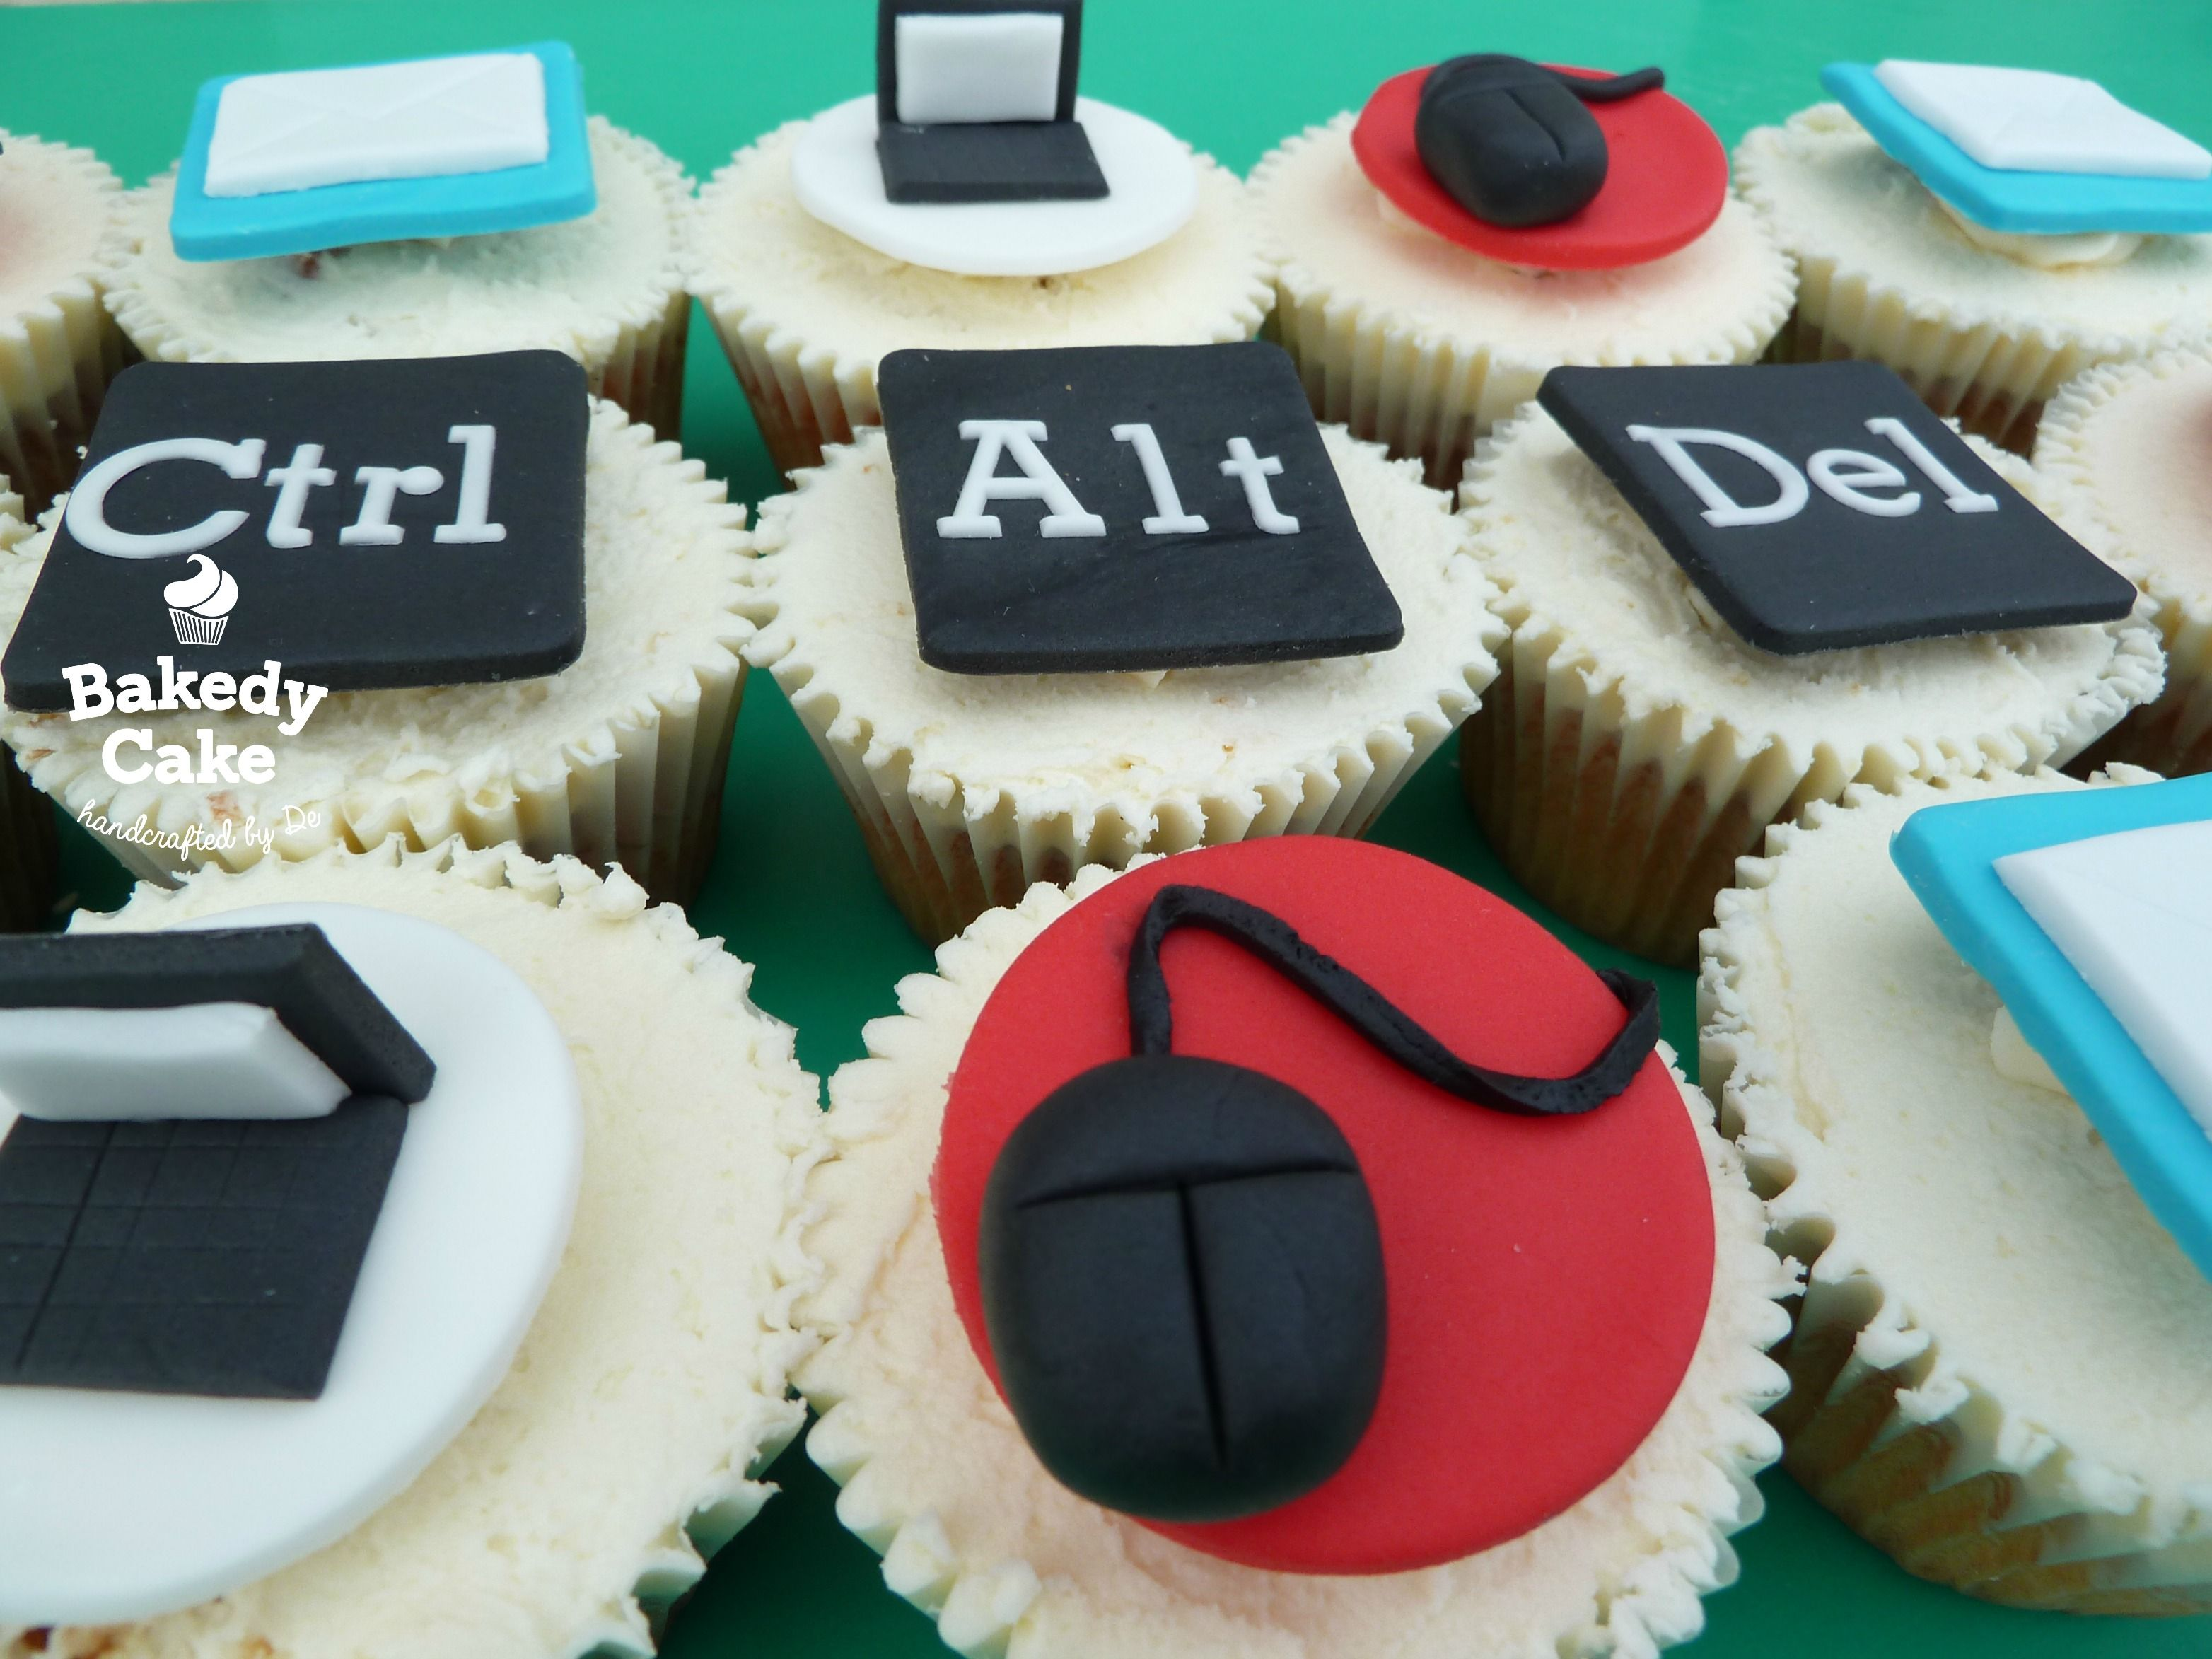 IT or Computer Themed Cupcakes by Bakedy Cake. They were ...